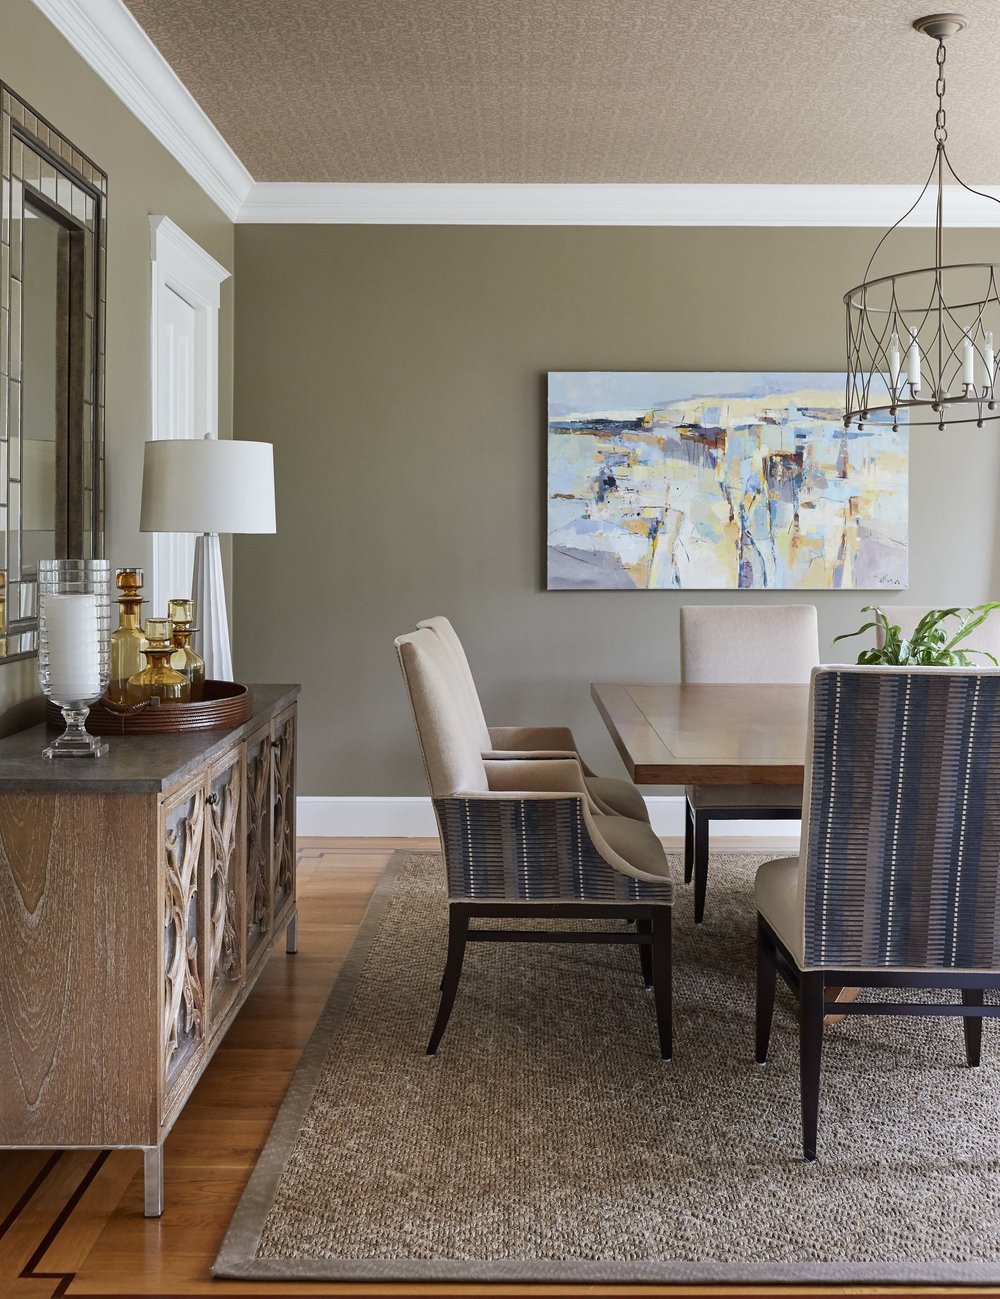 Deep rich mushroom colored walls are a backdrop to the Dining Room's transitional furnishings that feel collected.